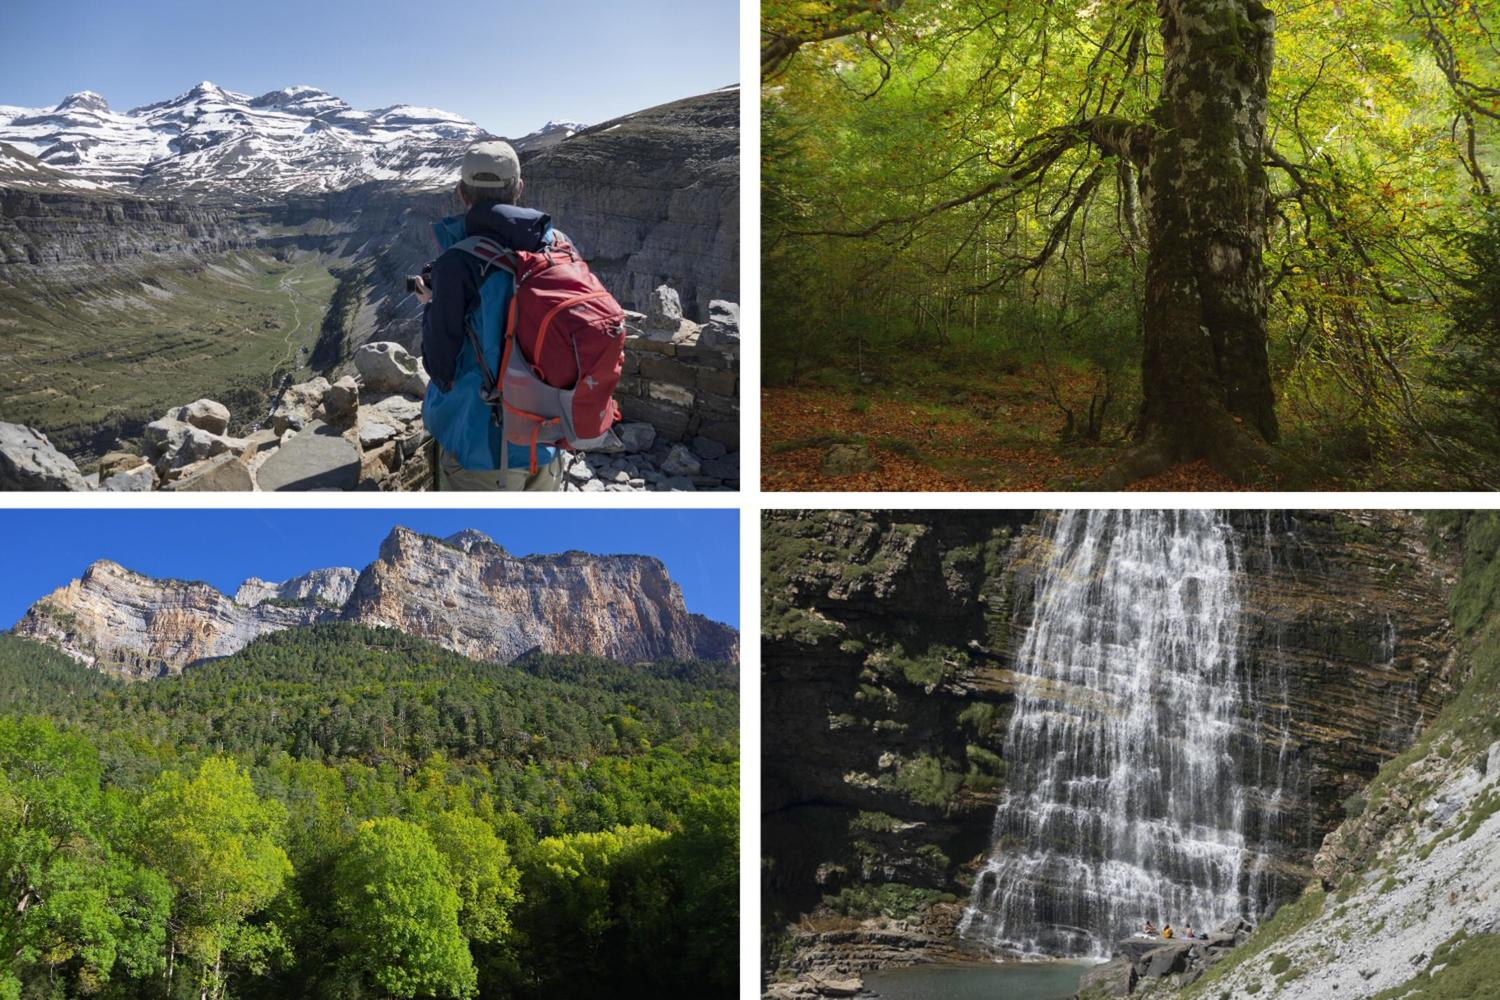 Scenic highlights from Spain's Ordesa y Monte Perdido National Park